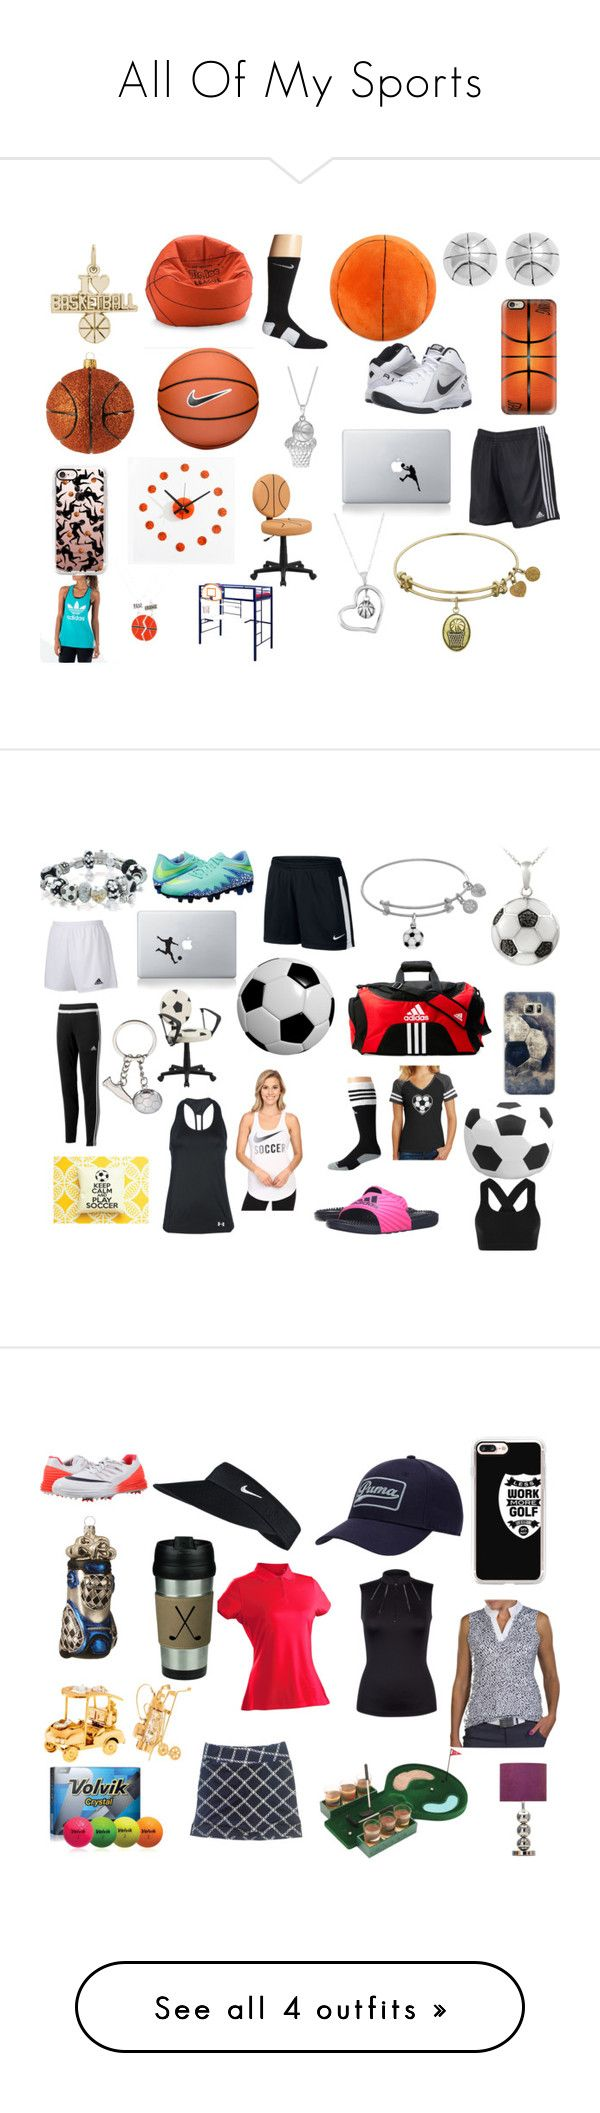 """""""All Of My Sports"""" by mbailey4 ❤ liked on Polyvore featuring Journee Collection, NIKE, Casetify, adidas, Rembrandt Charms, Nordstrom, Vinyl Revolution, Flash Furniture, Dayna U and DB Designs"""